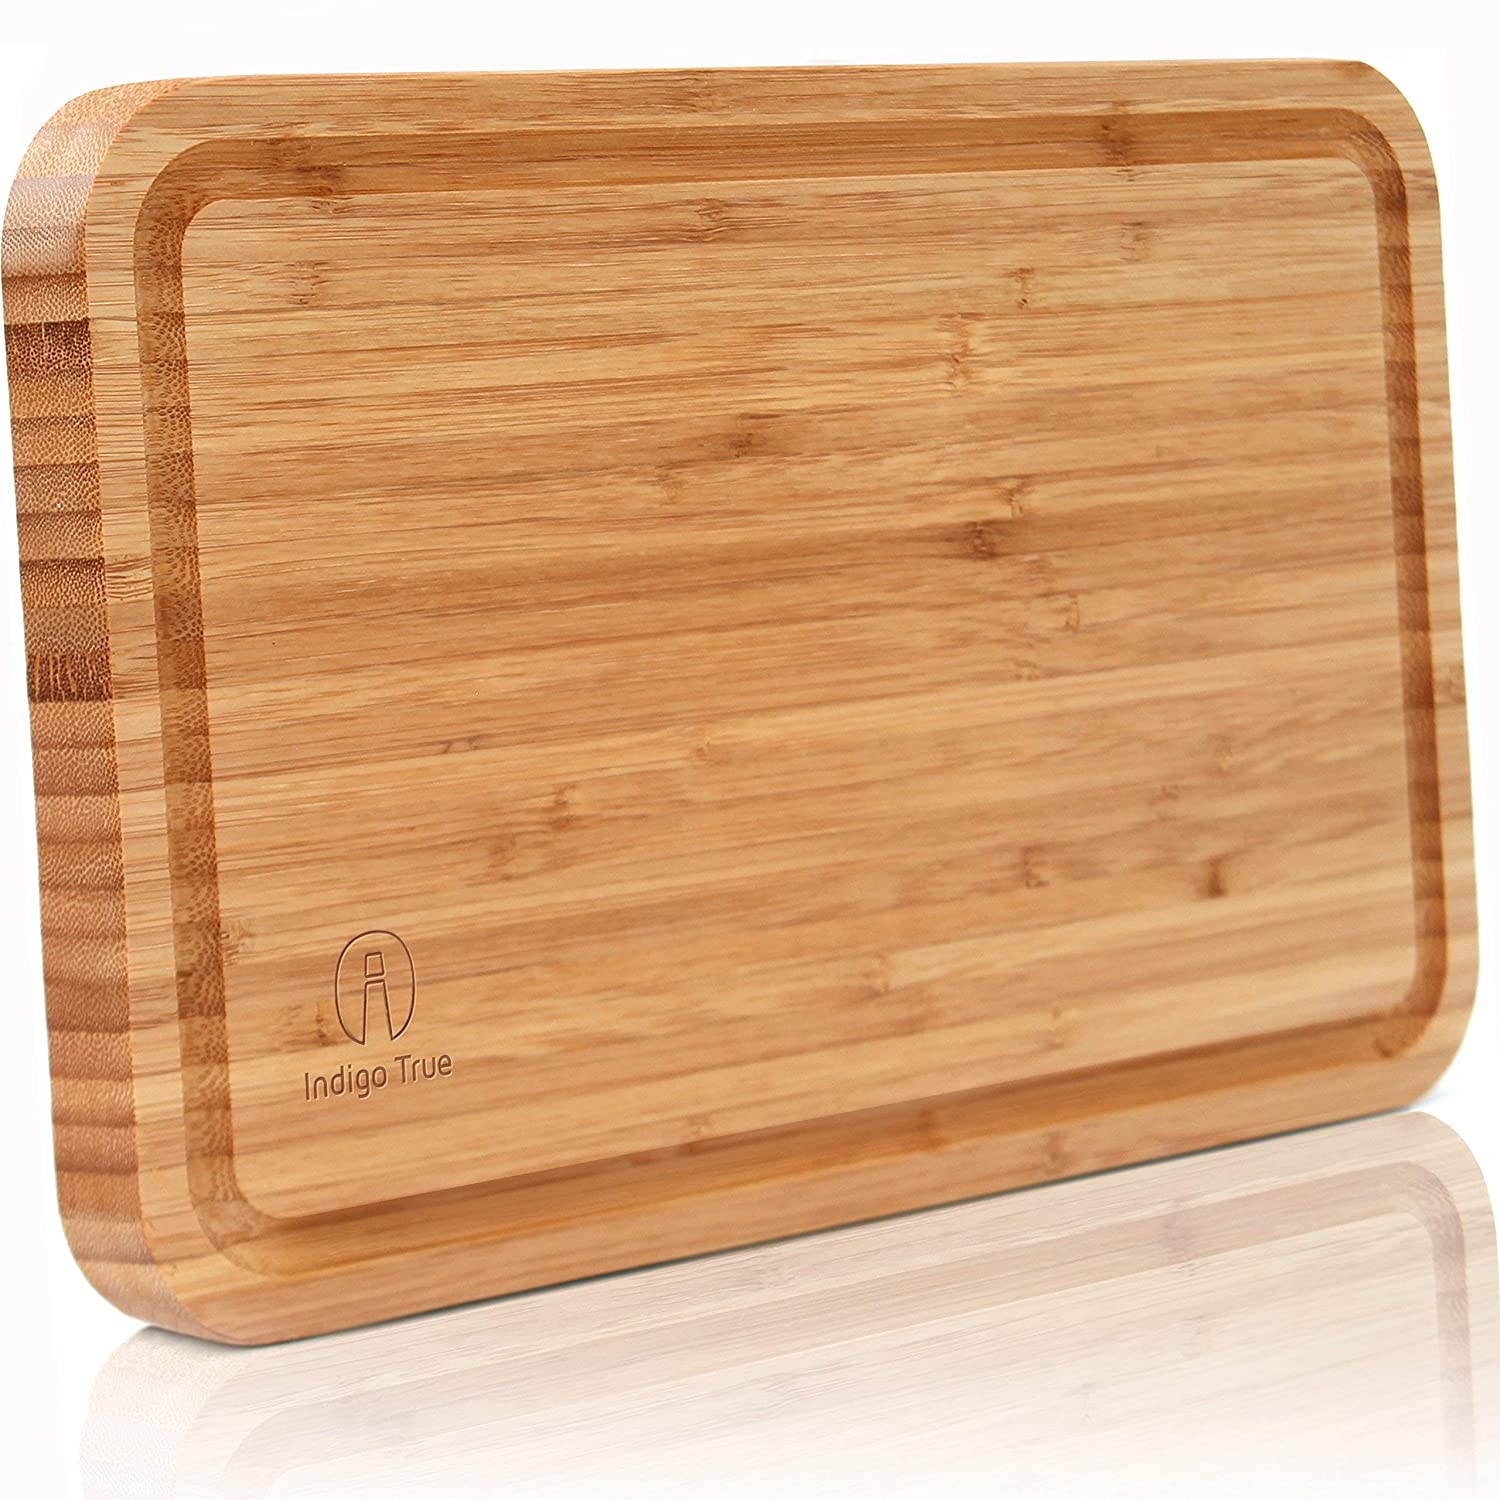 Wood Cutting Board with Grooves